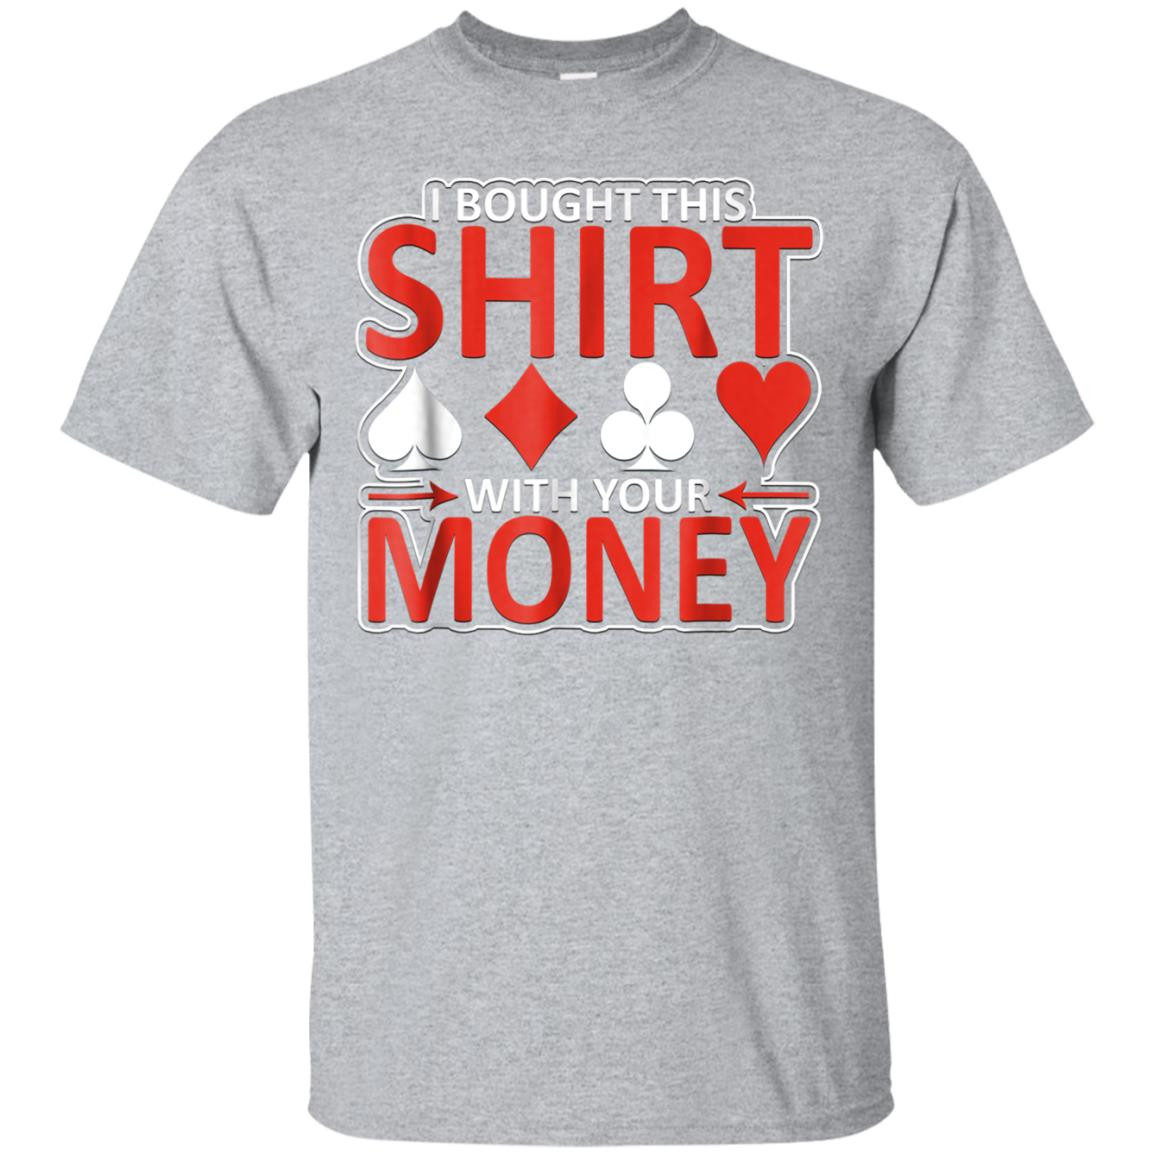 I Bought This Shirt With Your Money Graphic Winners T-Shirt 99promocode